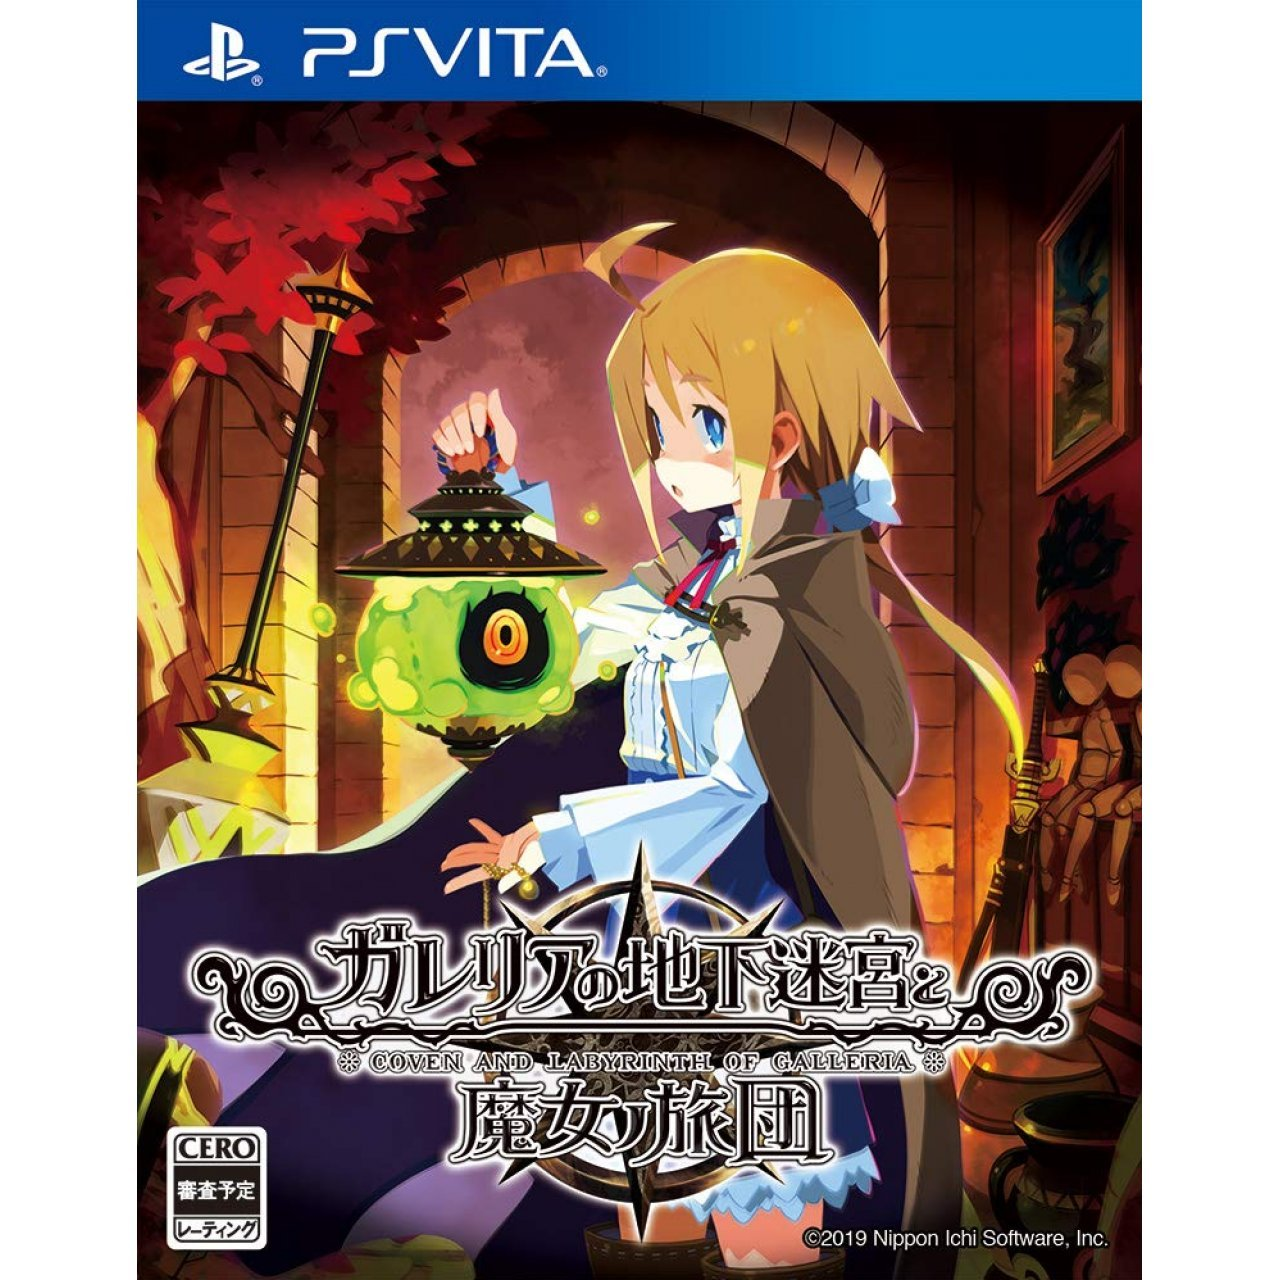 website to download ps vita games for free